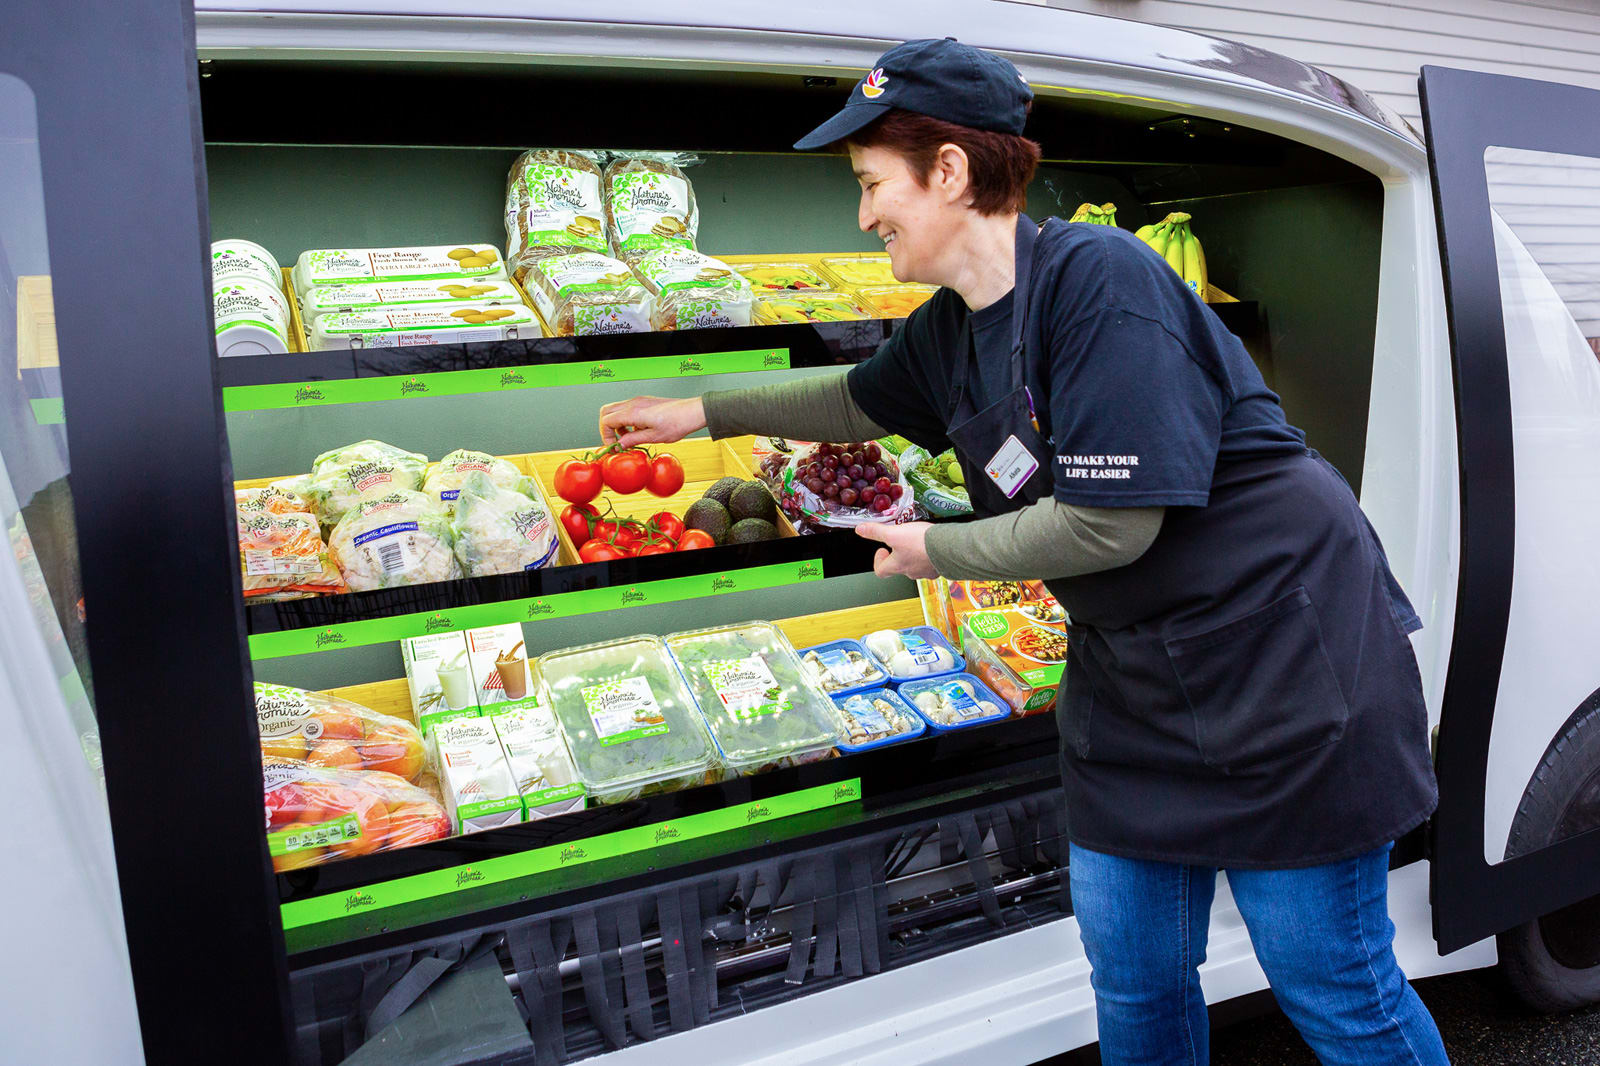 Stop & Shop's self-driving grocery car